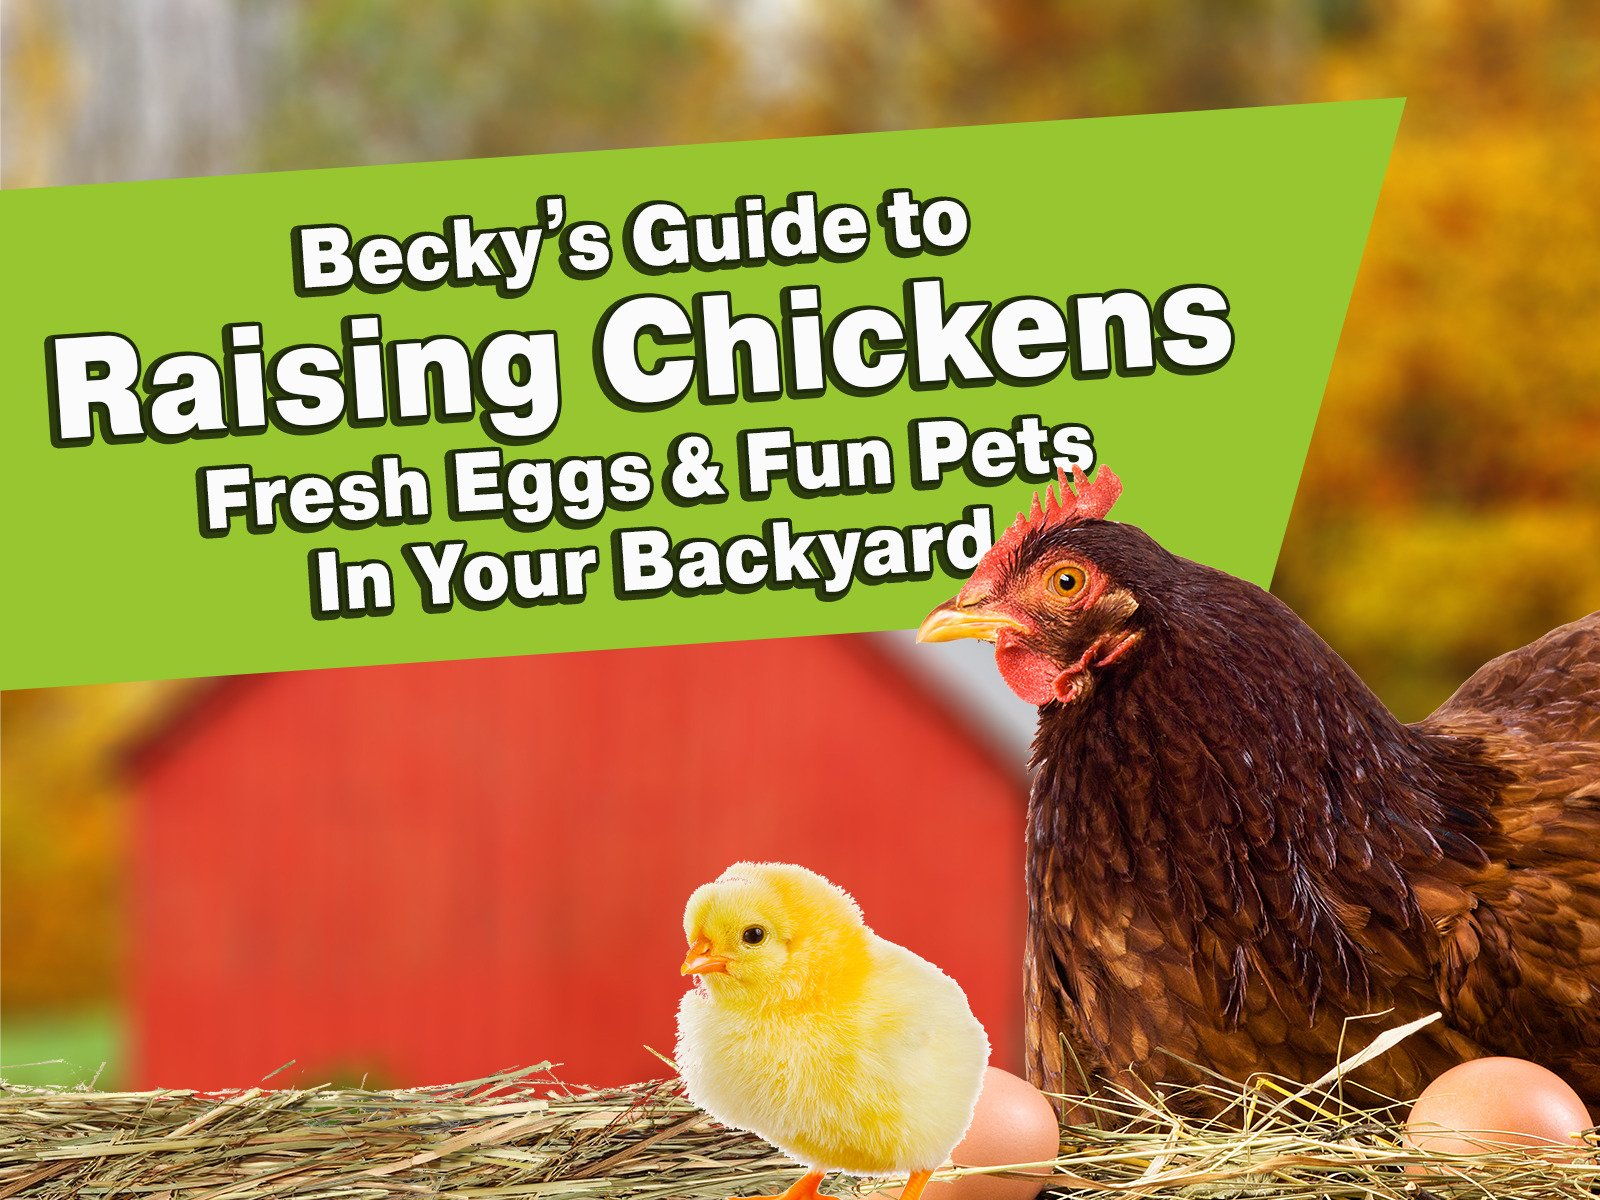 Becky's Guide to Raising Chickens - Season 1